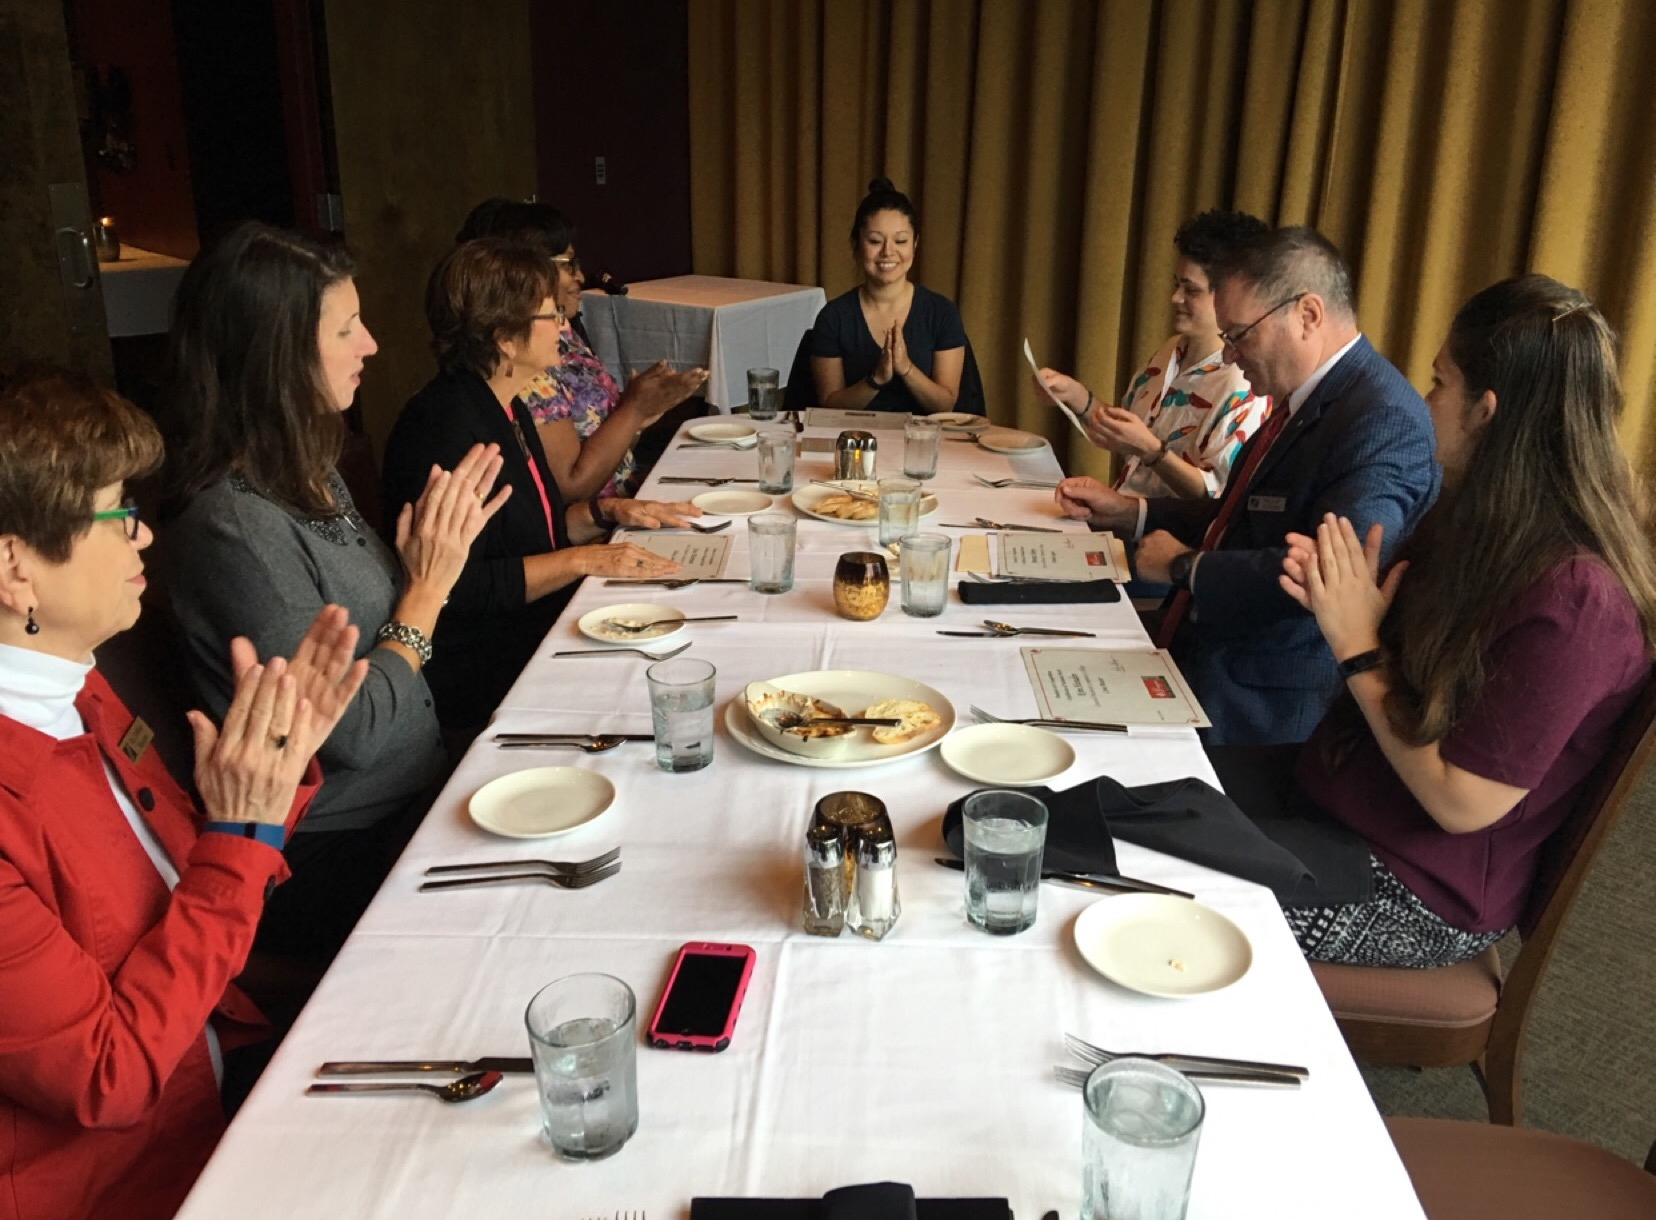 League for Innovation luncheon. Left to right: Dr. Debbie Bouton, Amy Bruning, Jona Maiorano, Nichole Patterson, Catalina Duarte, KC Roberge, Richard Zollinger.